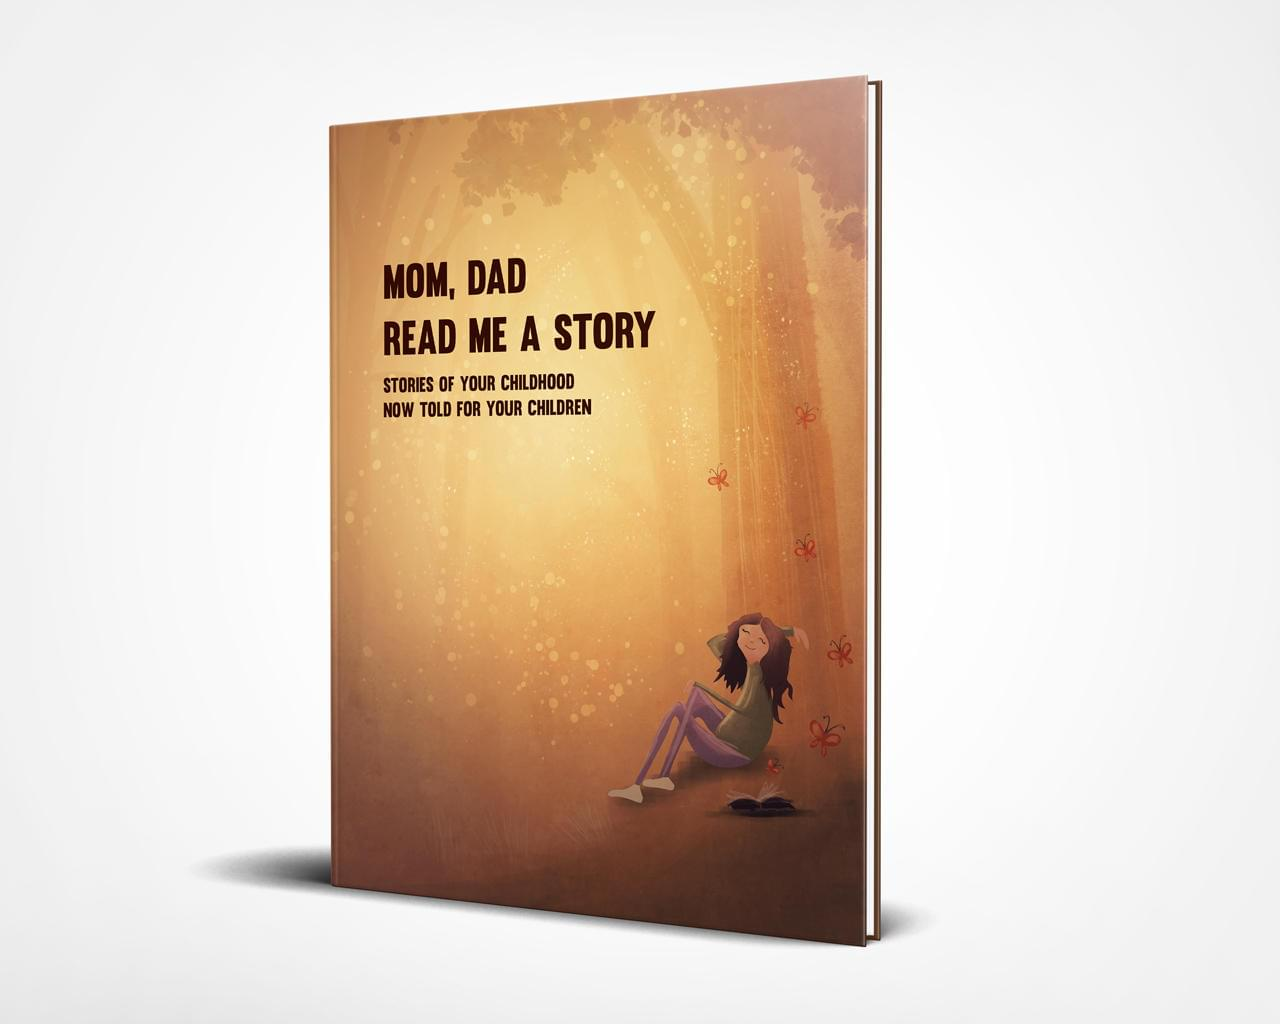 Children Book Covers - Book Cover Art, Cover Design, Typeface and Layout by CrArt - 113614